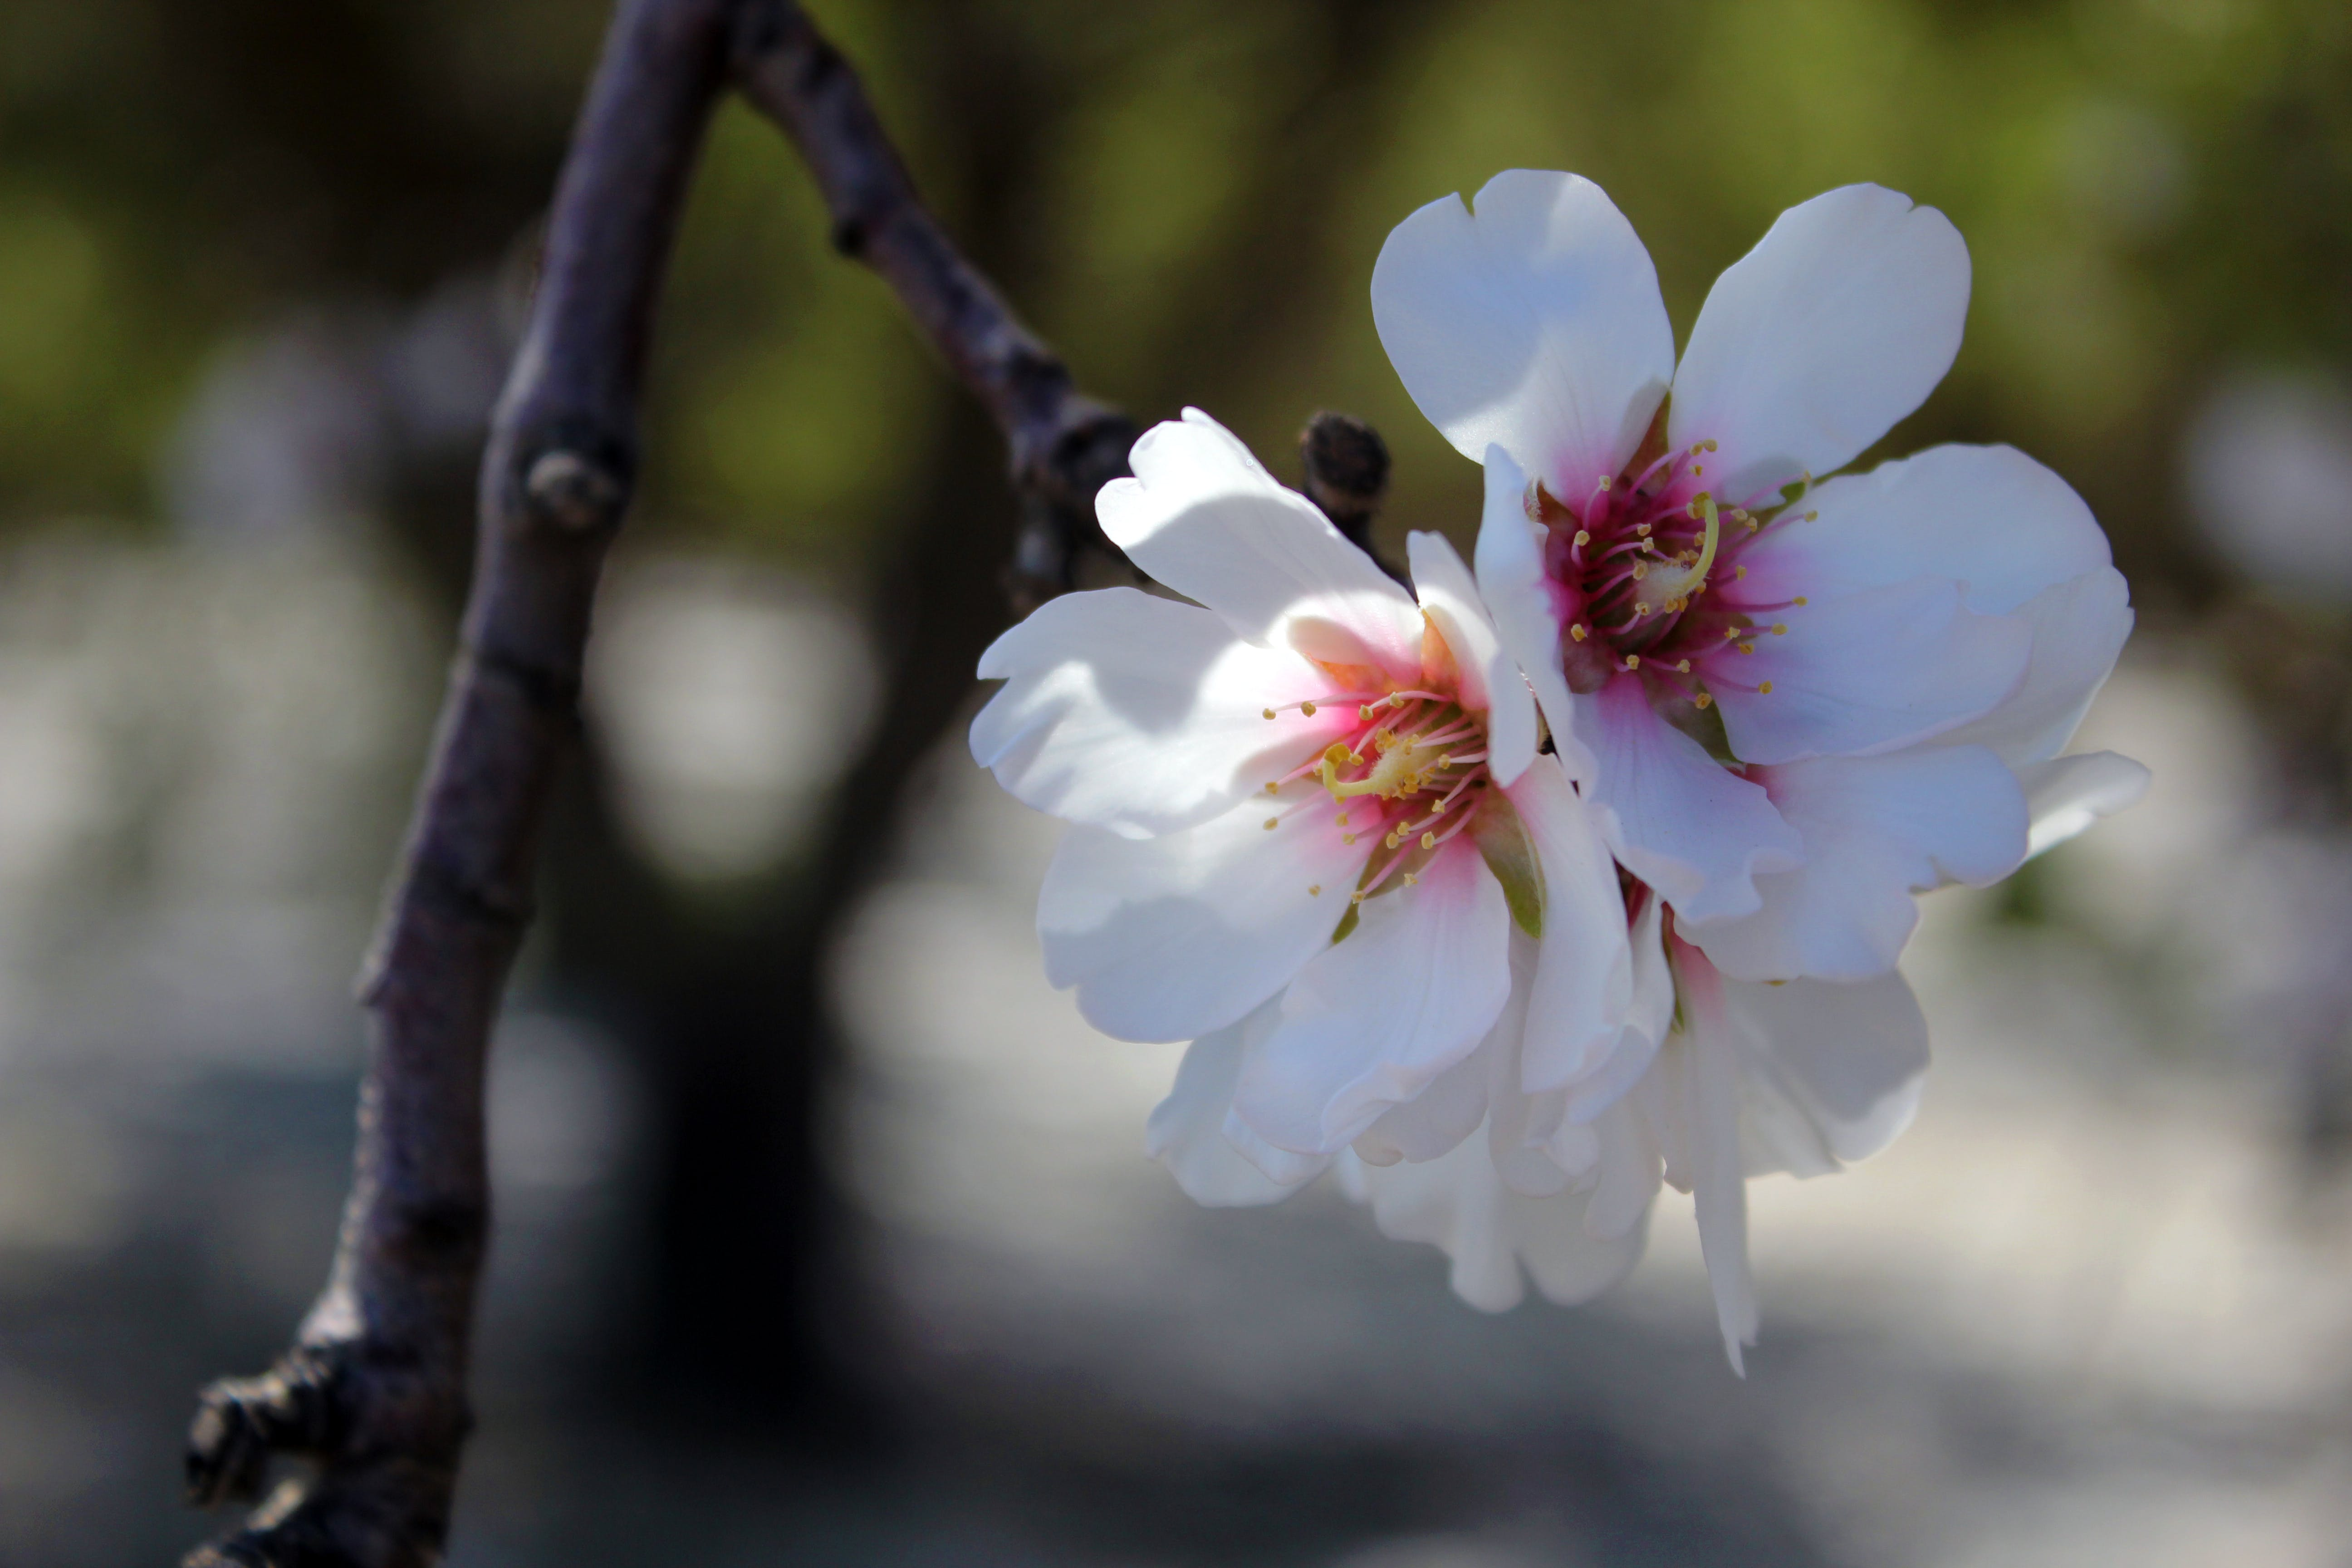 Free stock photo of flower, cherry blossom